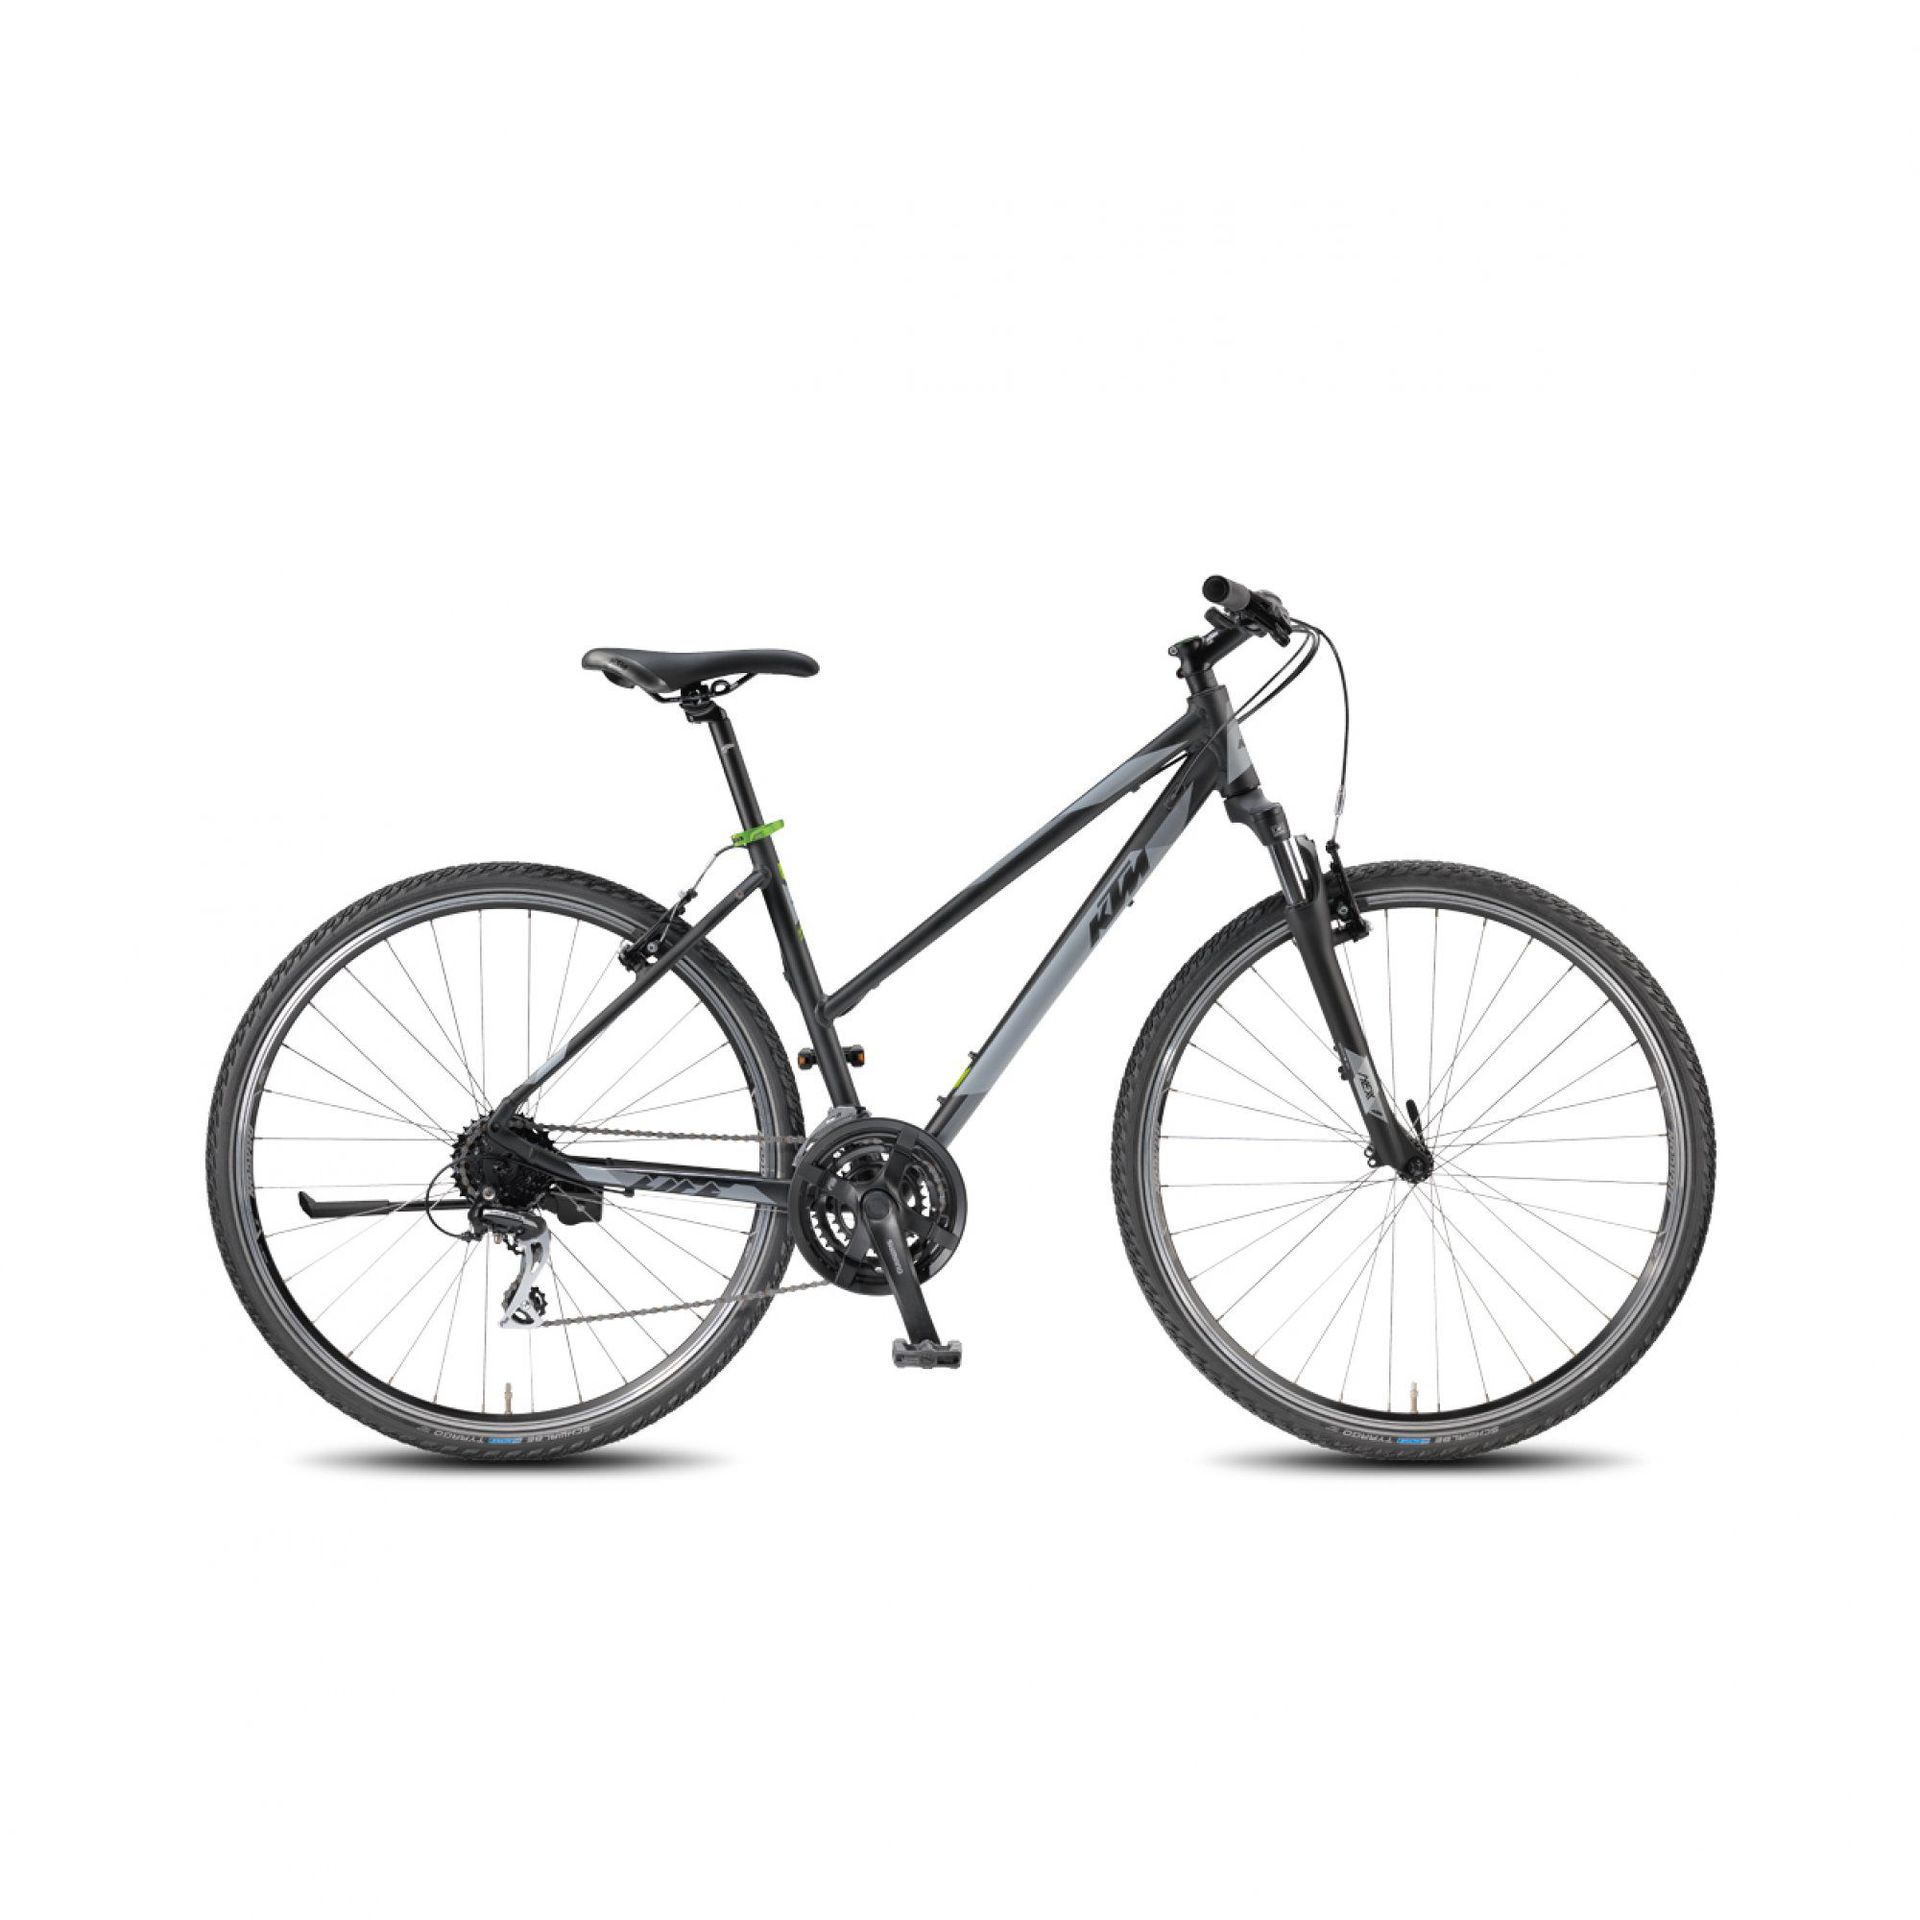 ROWER KTM LIFE ONE DA BLACK|GREY